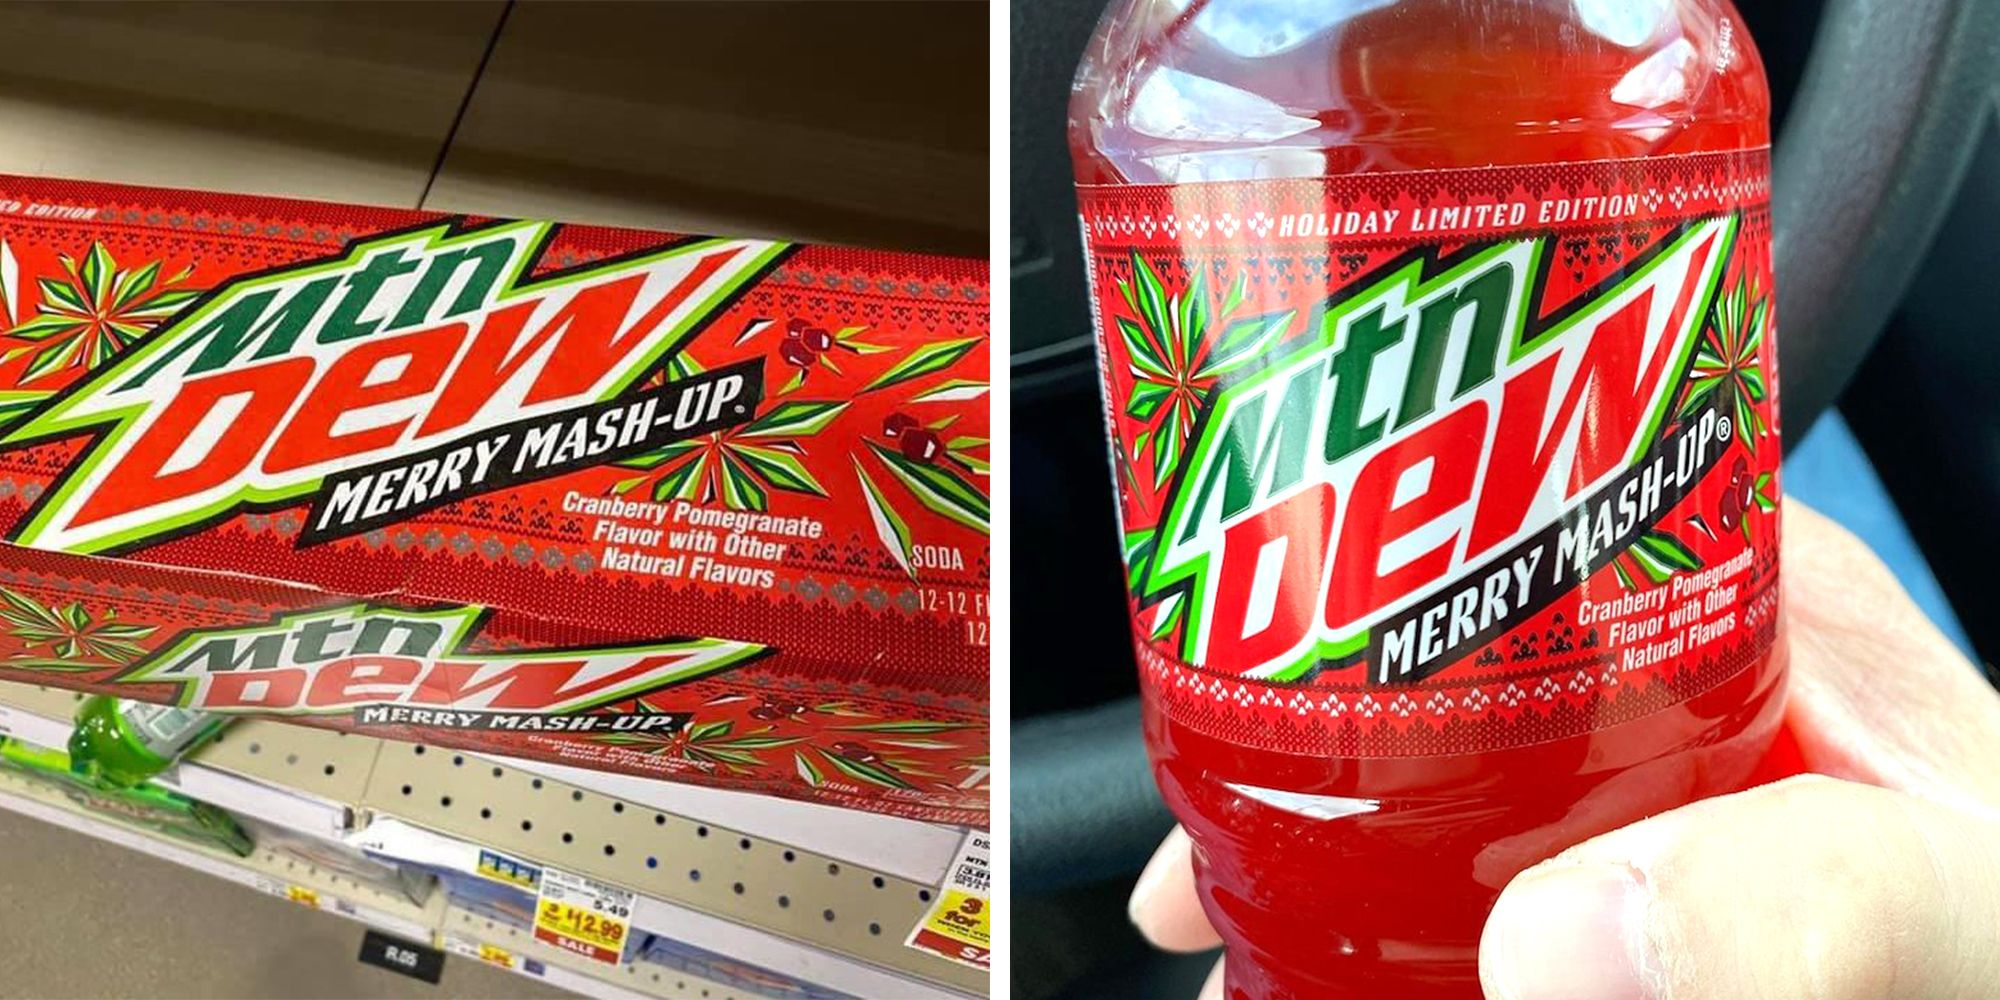 Mountain Dew's Merry Mash-Up Taste Is Again With